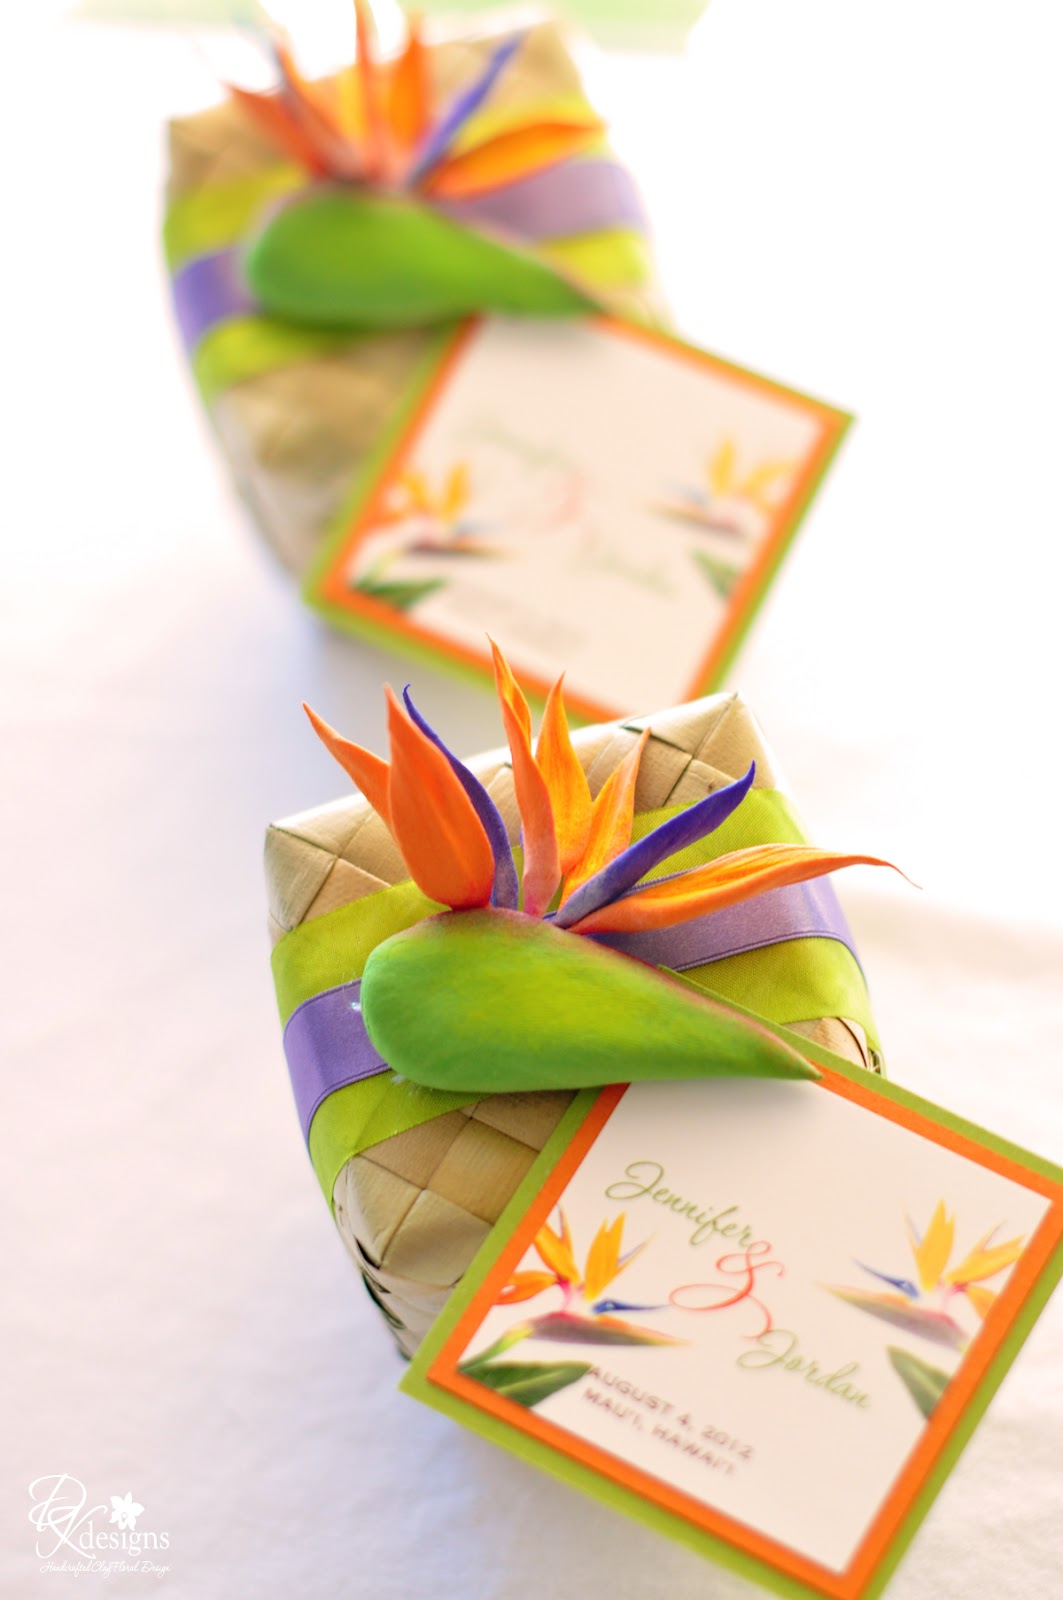 Her Bird Of Paradise Themed Wedding Invitations And Favors I Almost Turned Down The Order Based On My Workload At Time But She Made It Hard For Me